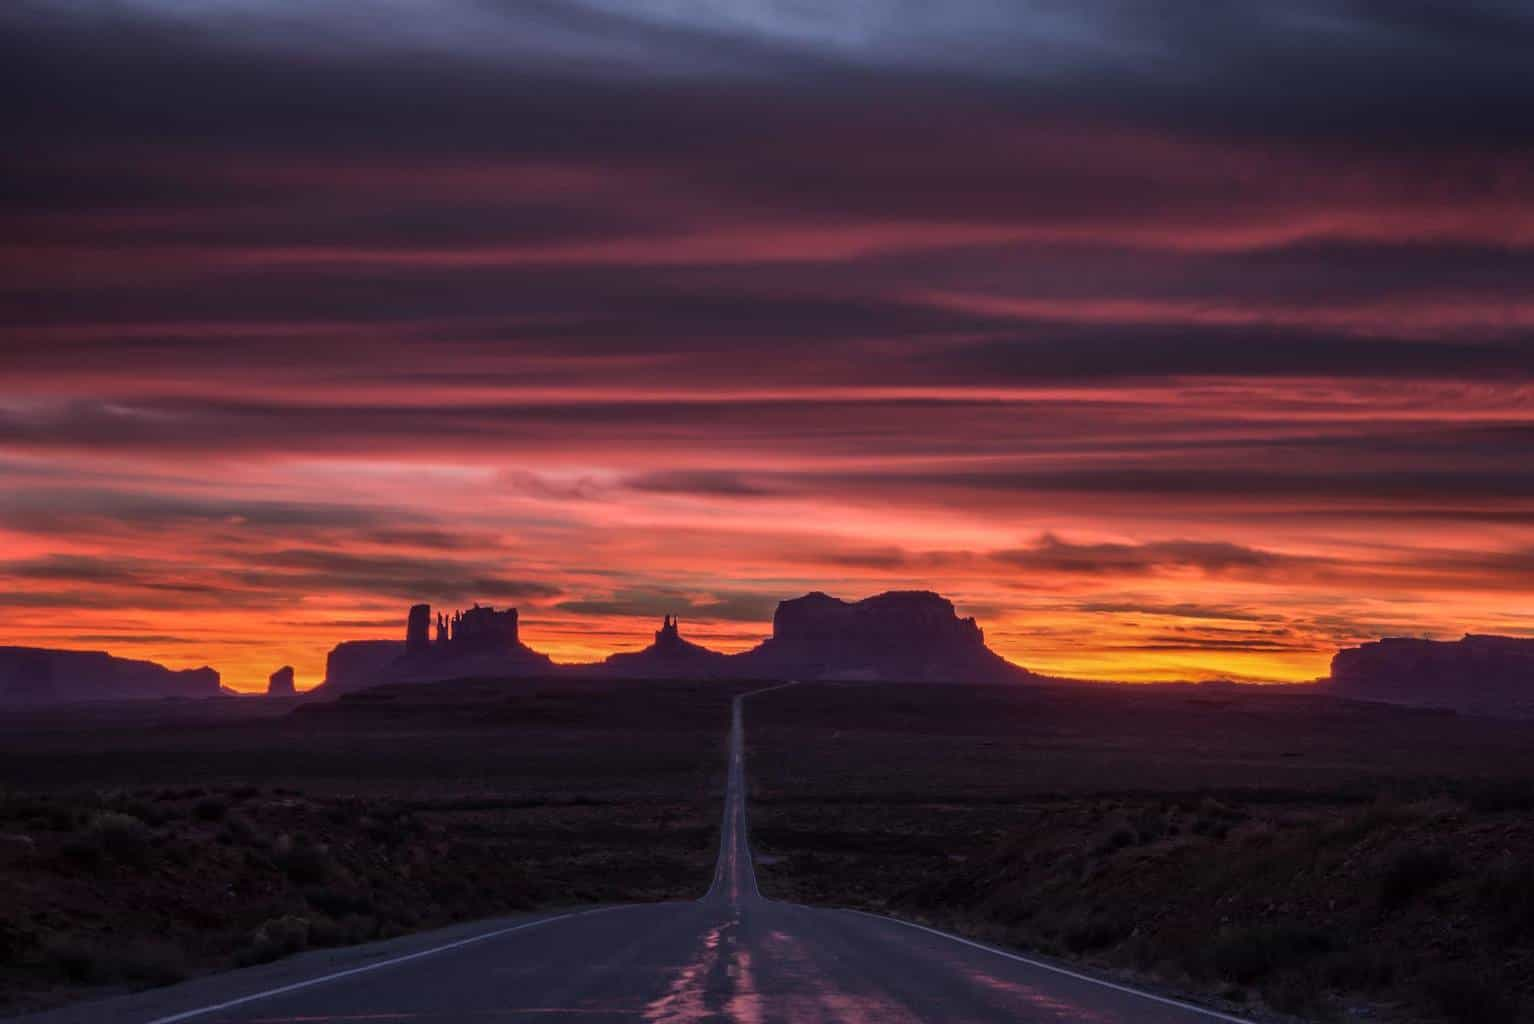 Awesome sunset in Monument Valley along the AZ/UT border the other night.